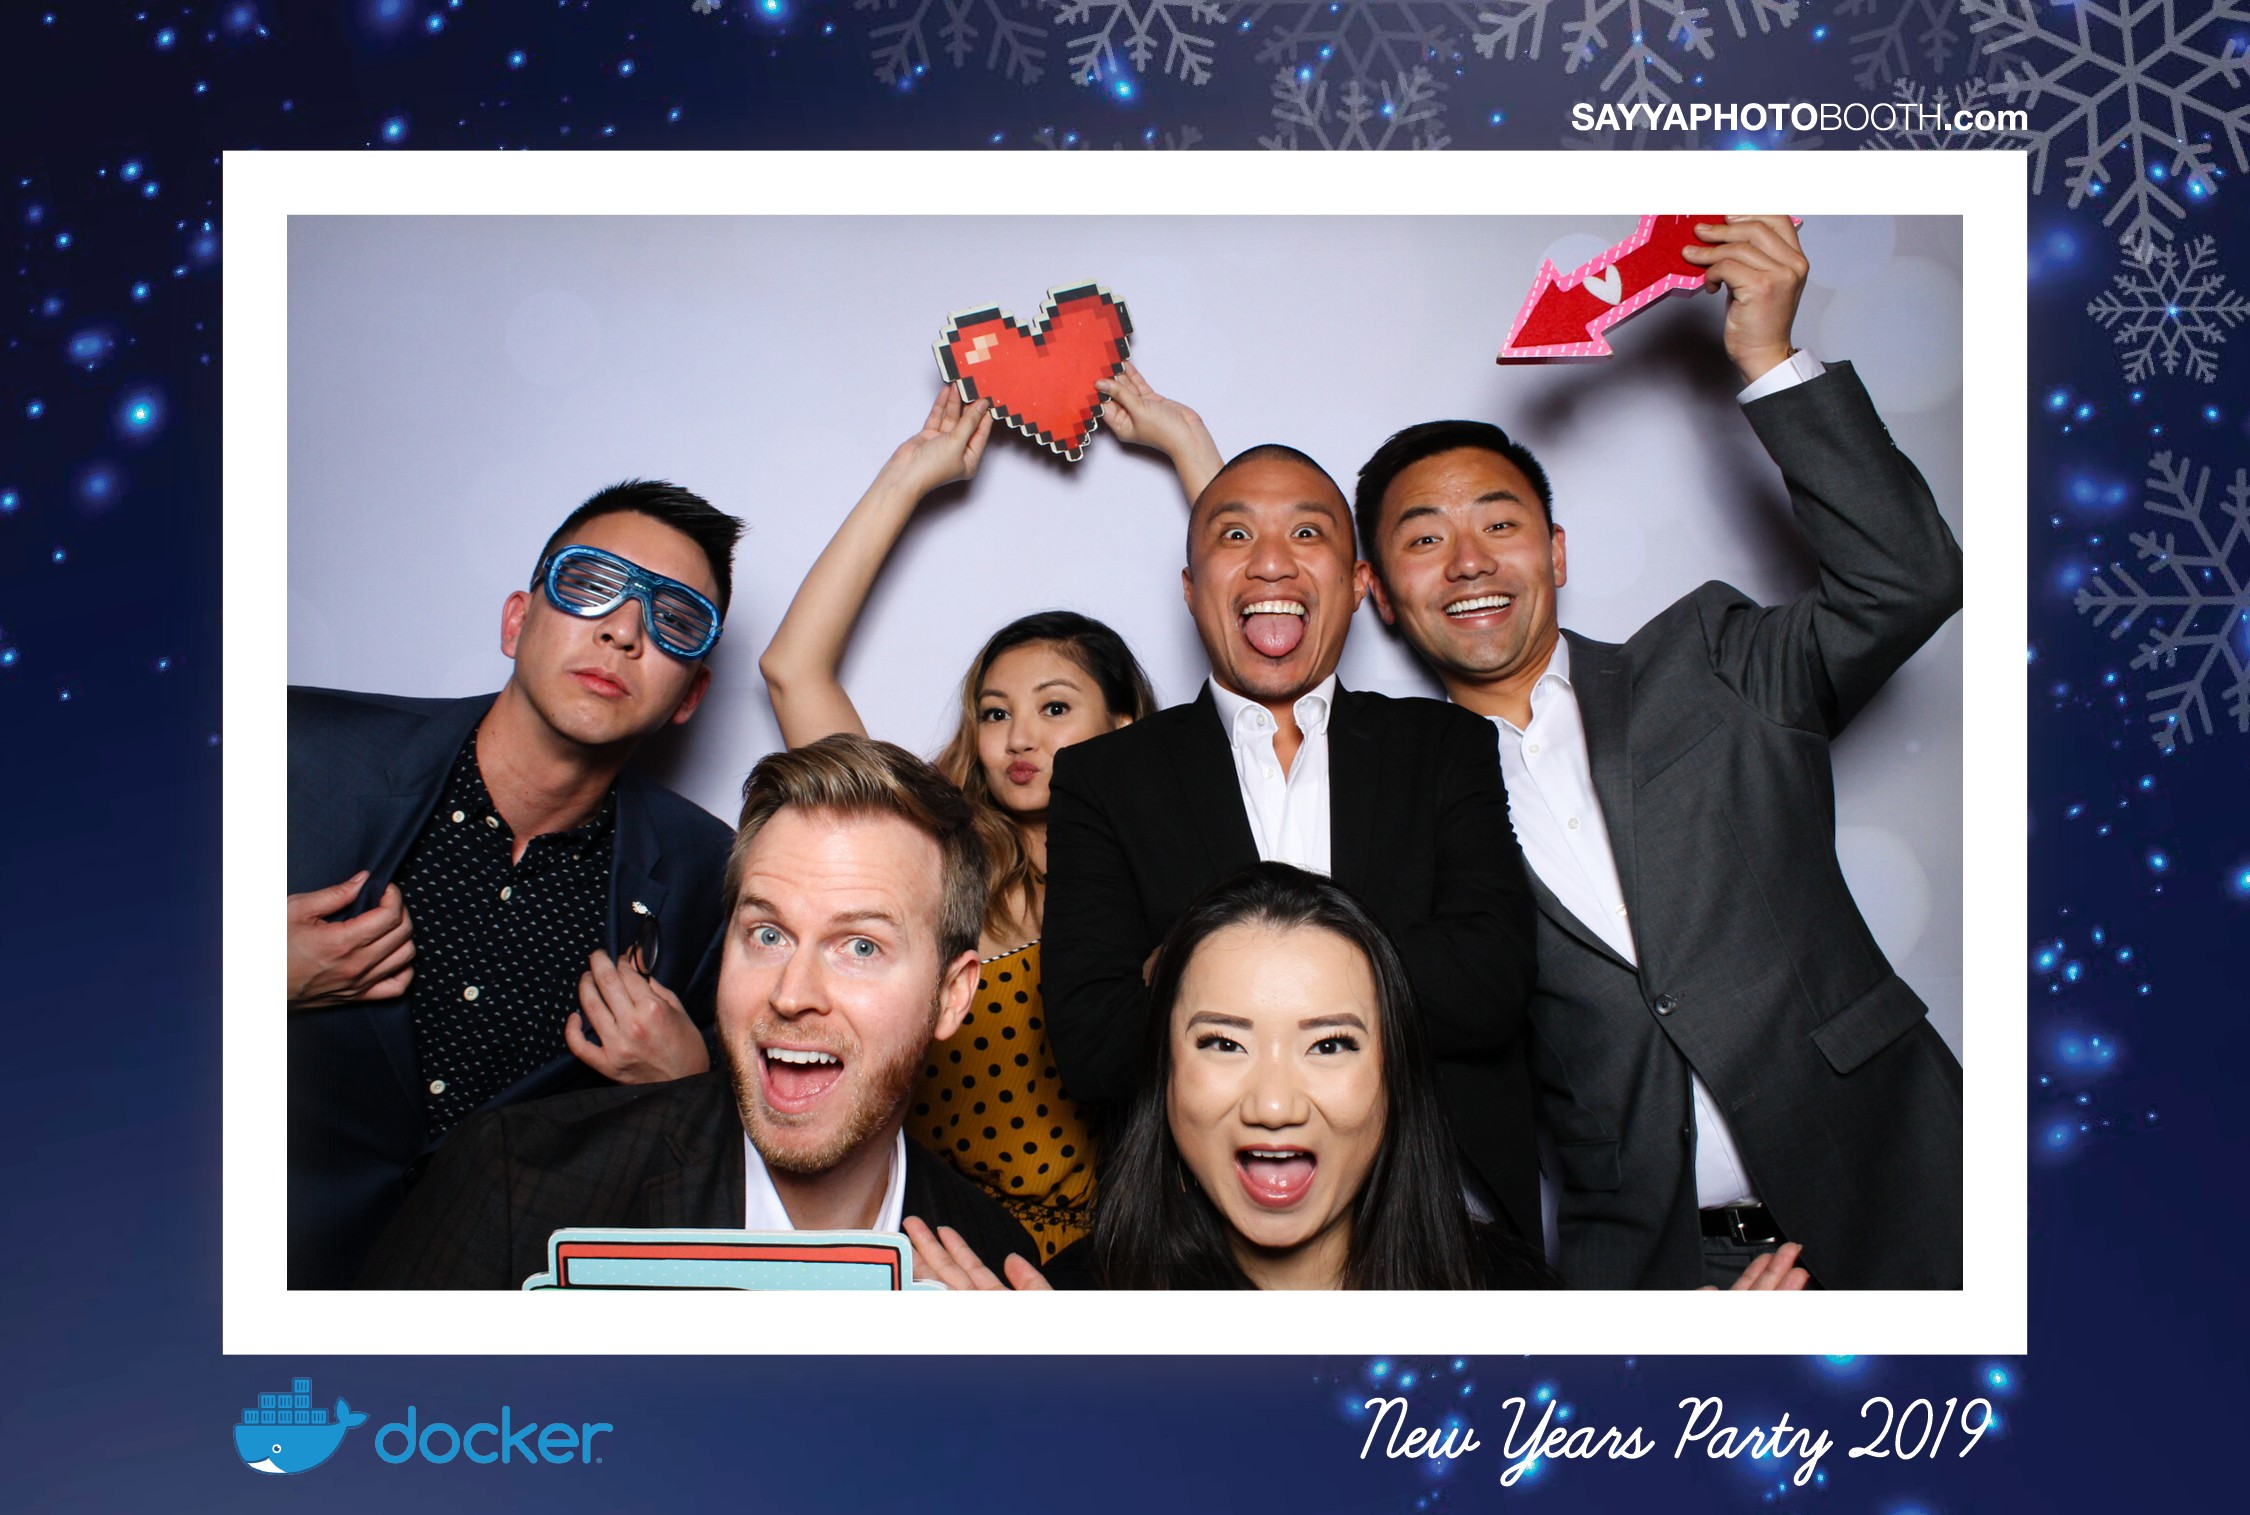 Docker Holiday Party